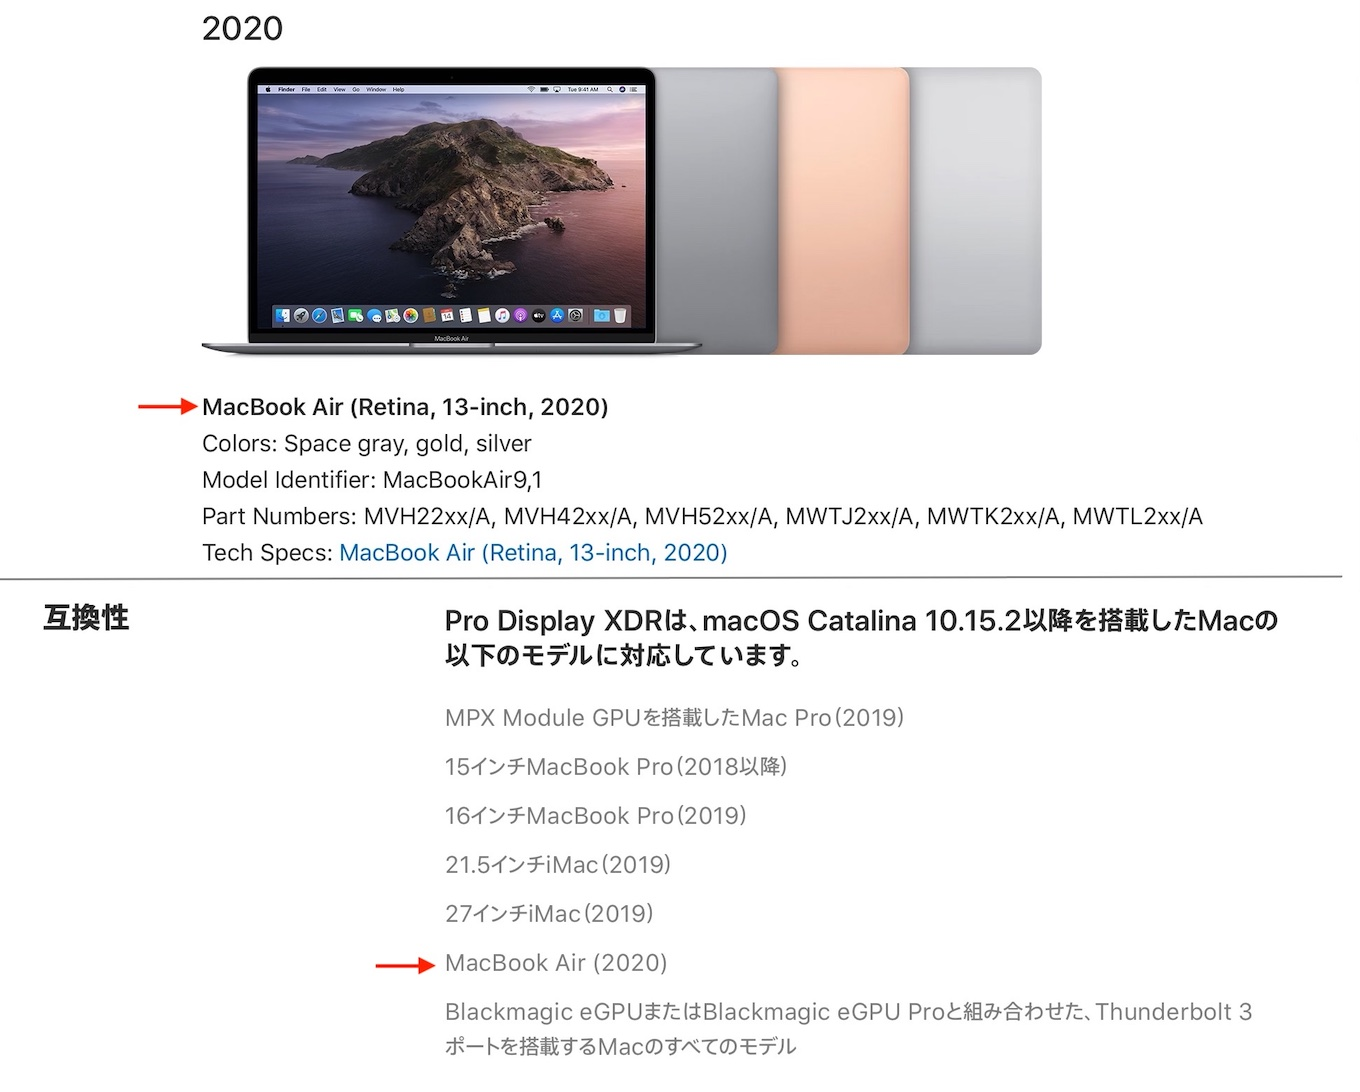 MacBook Air (Retina, 13-inch, 2020)の表記